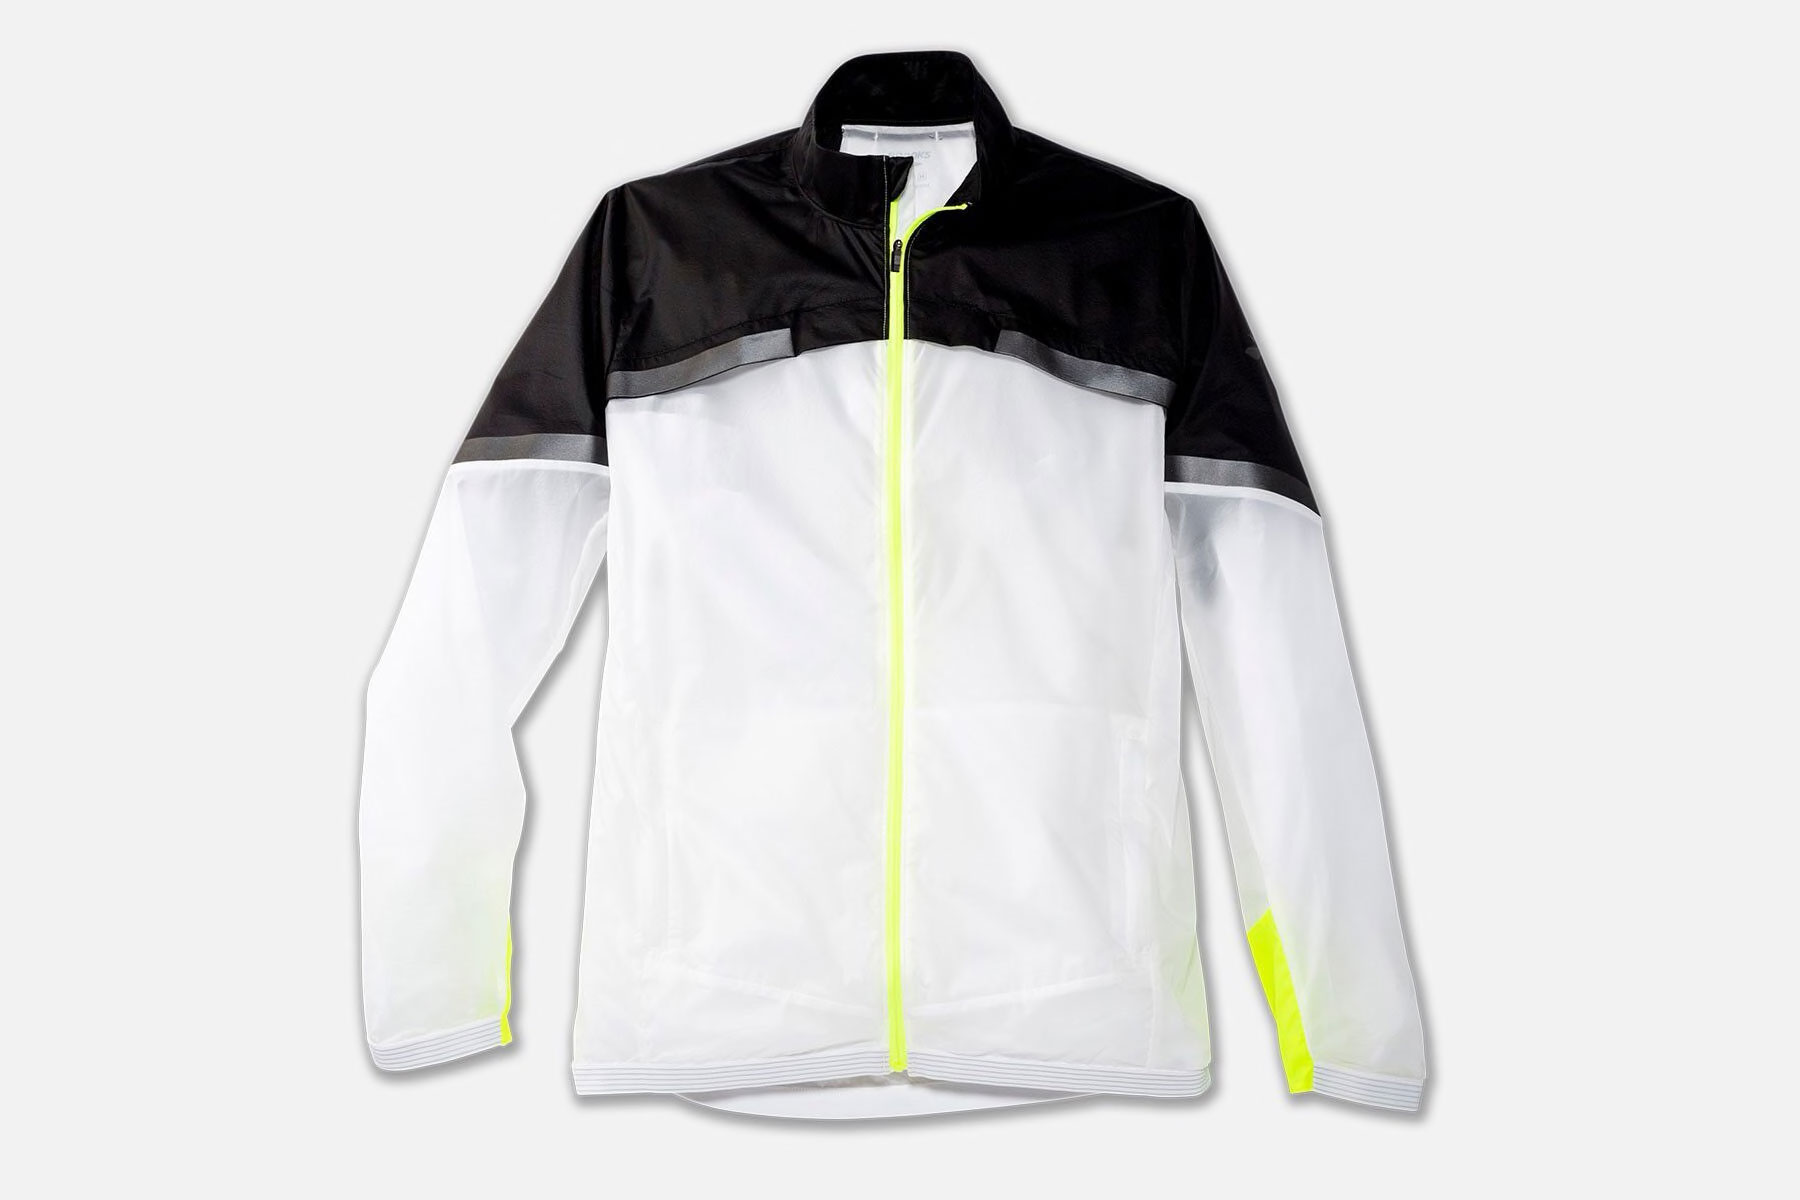 Gifts for men, gift ideas for him - Brooks Carbonite Jacket